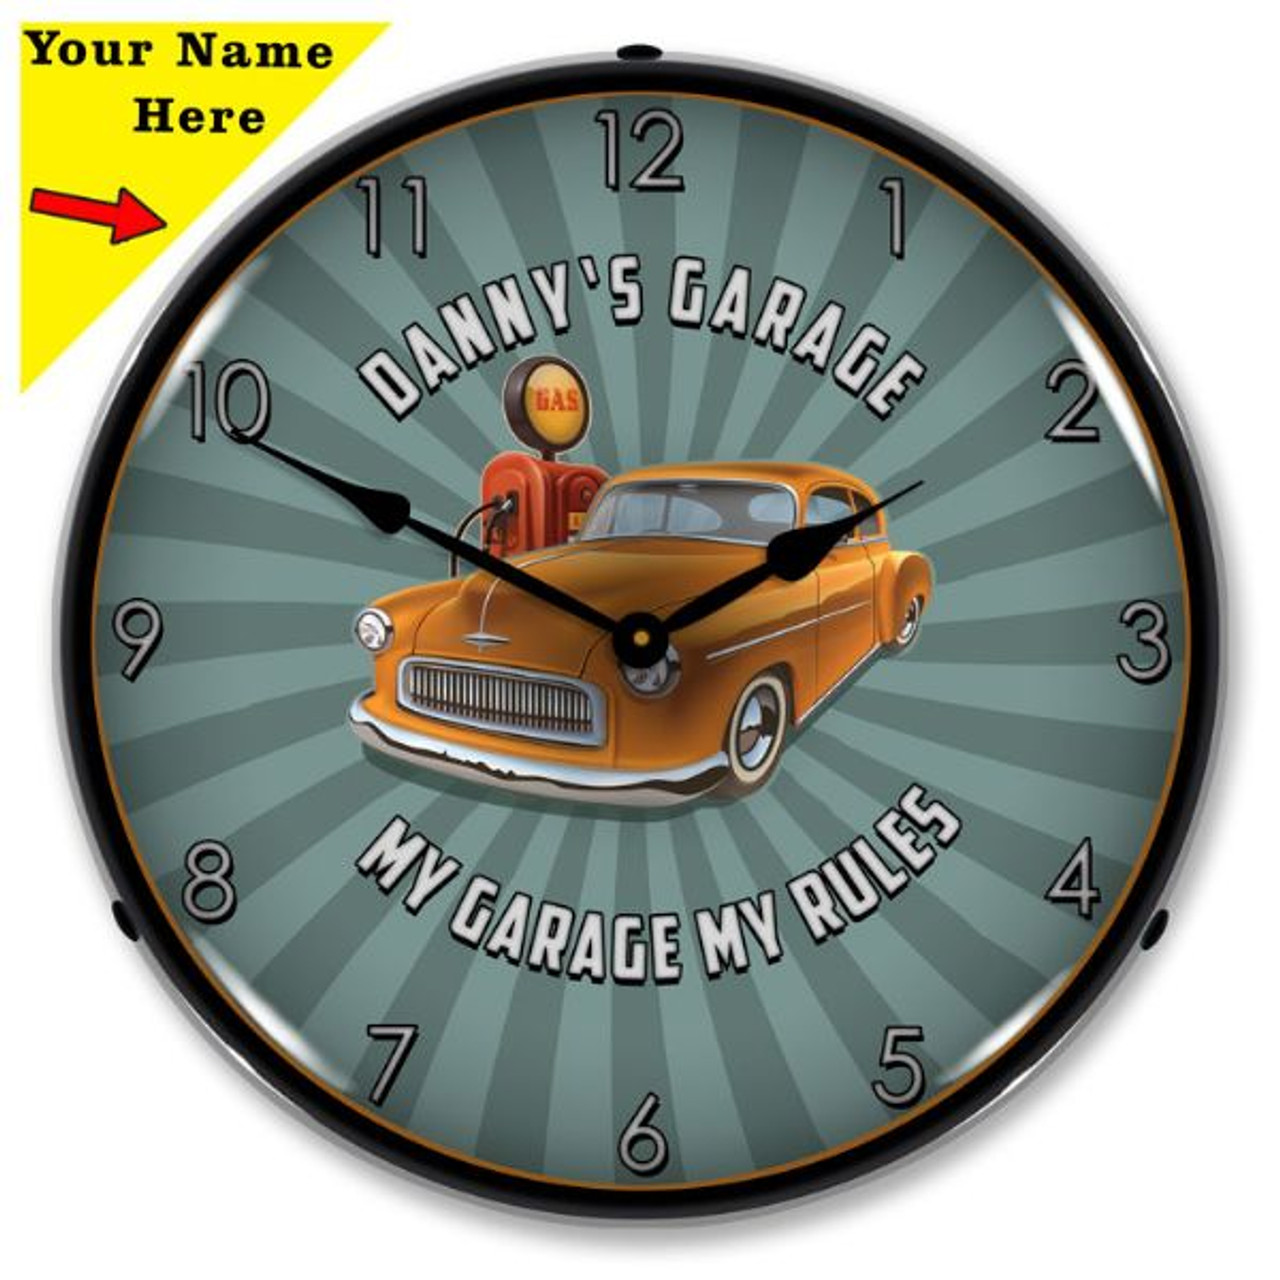 Personalized My Garage My Rules LED Lighted Wall Clock 14 x 14 Inches (Add Your Name)